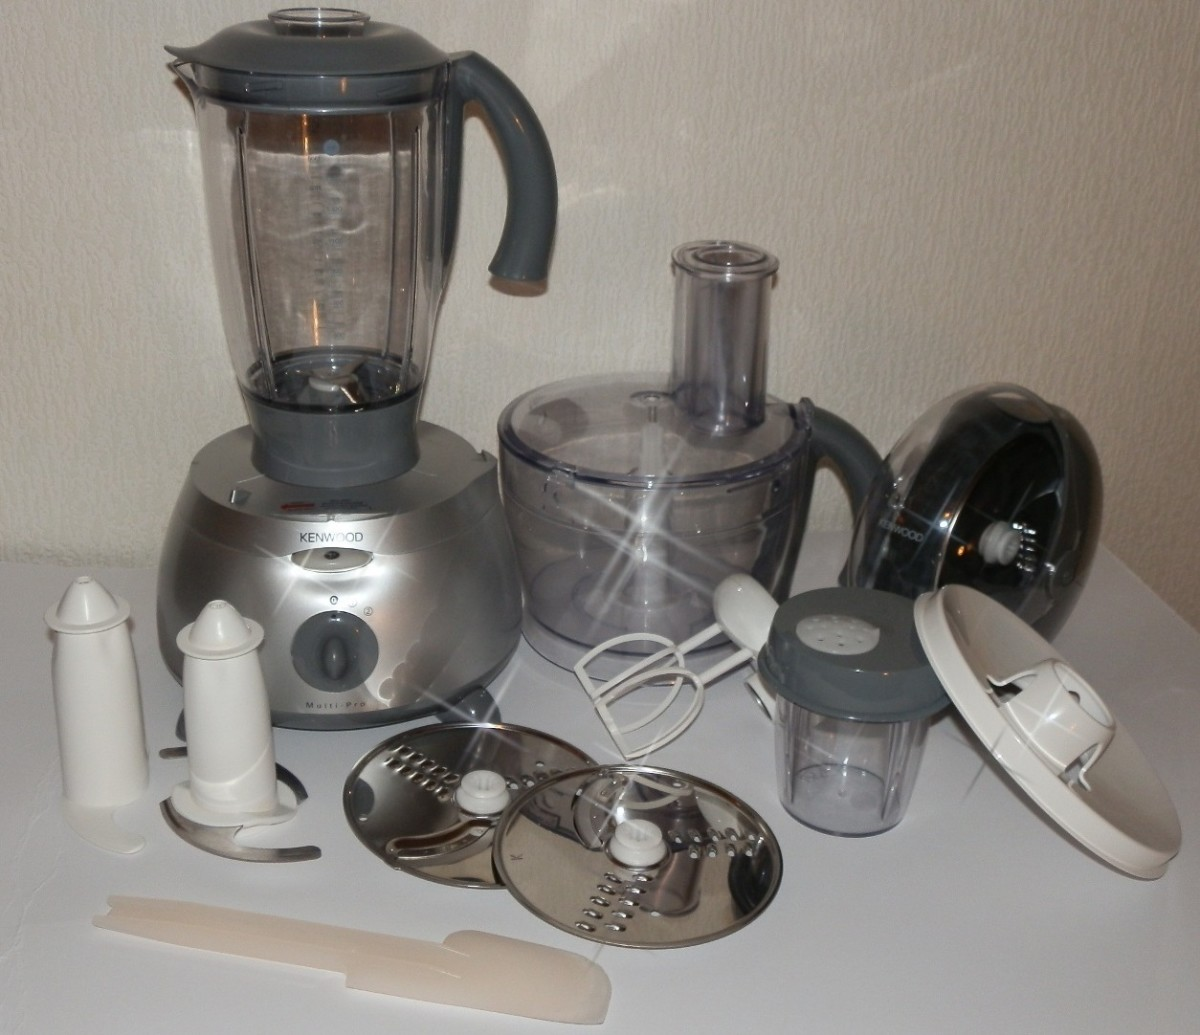 Kenwood Multi-Pro Food Processor Review